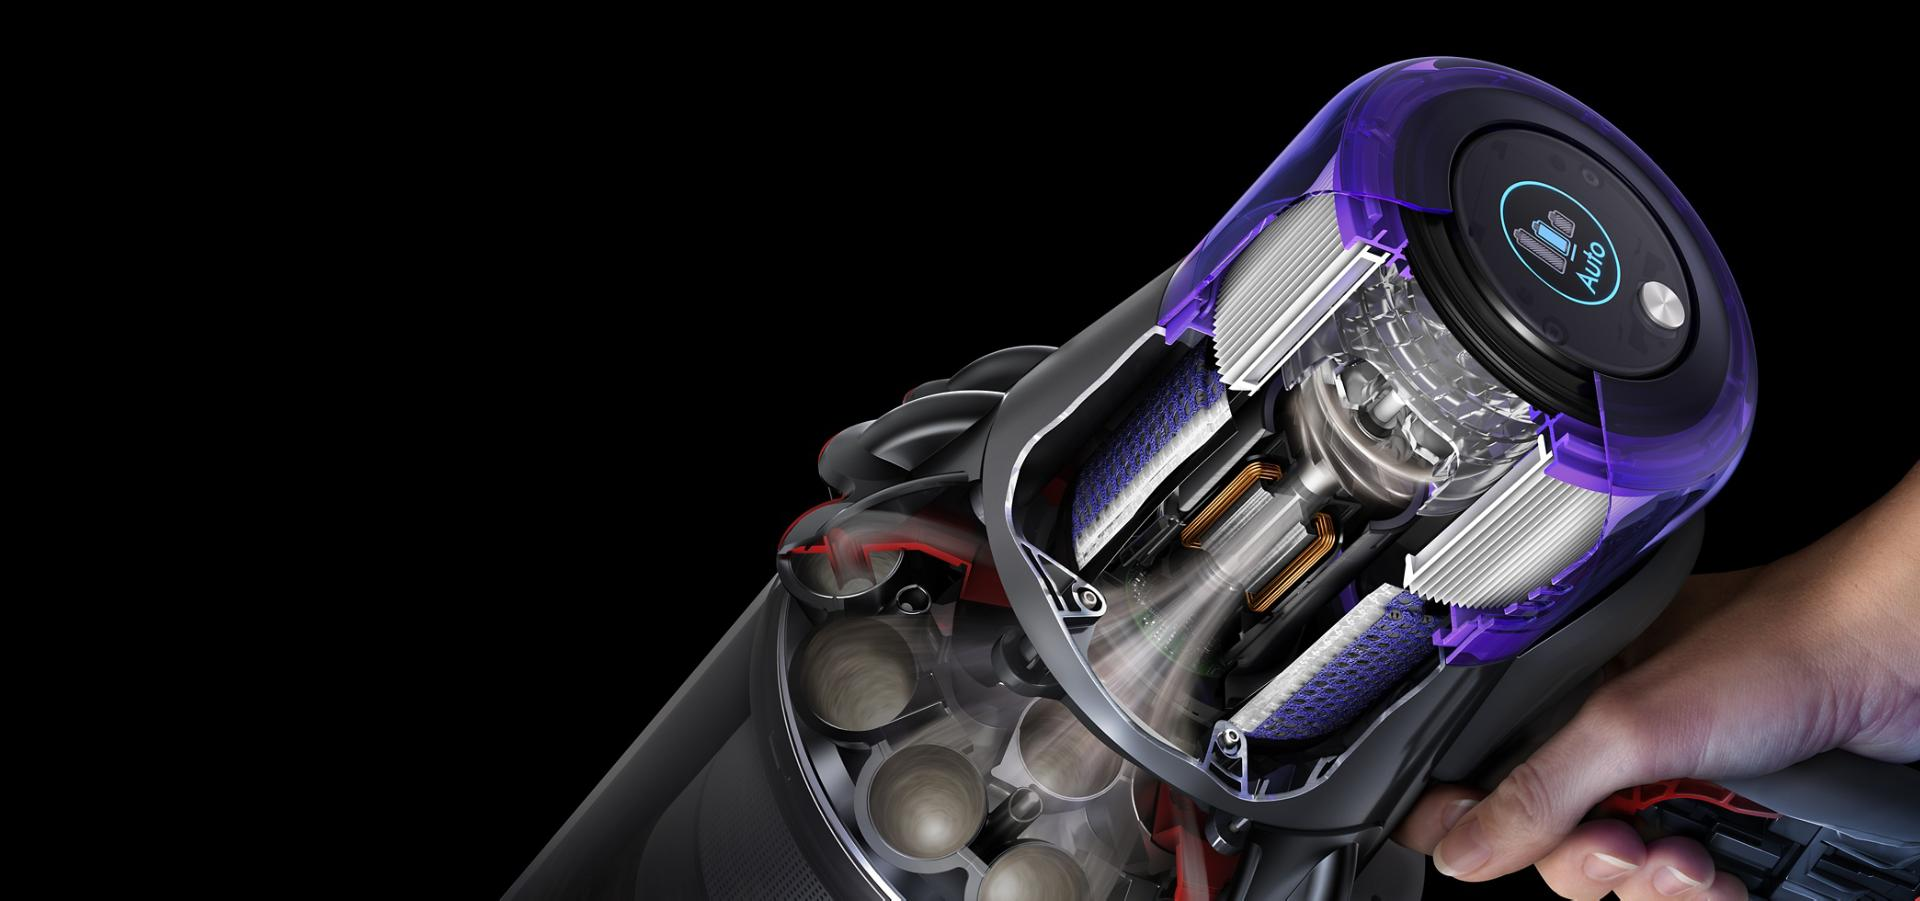 A cutaway showing the Dyson V11 Outsize vacuum's motor